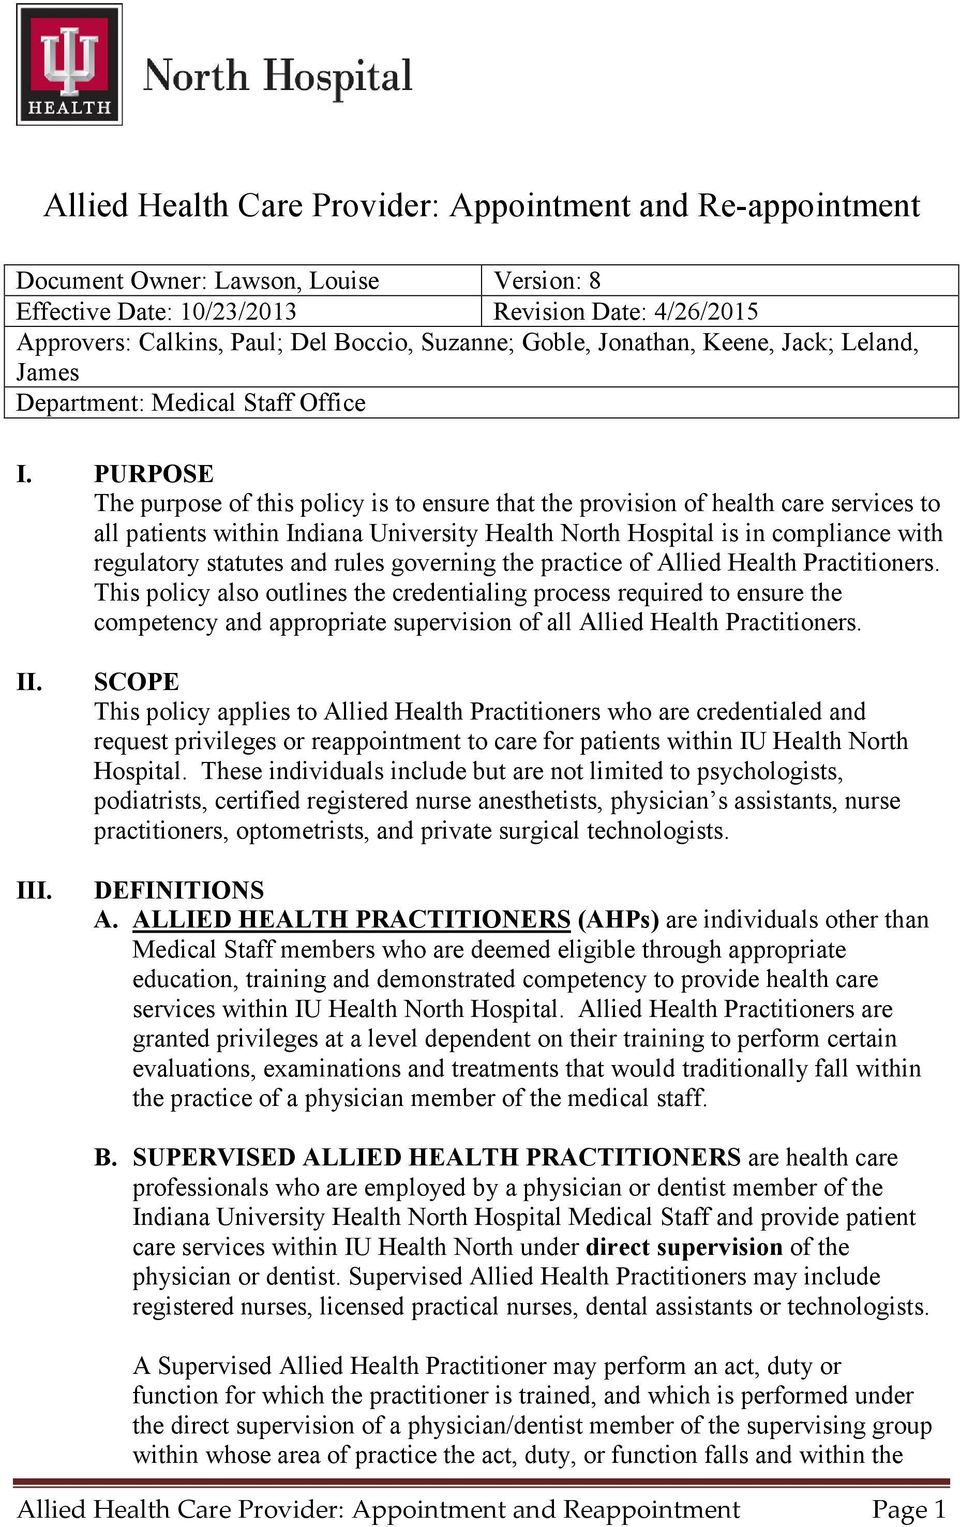 PURPOSE The purpose of this policy is to ensure that the provision of health care services to all patients within Indiana University Health North Hospital is in compliance with regulatory statutes